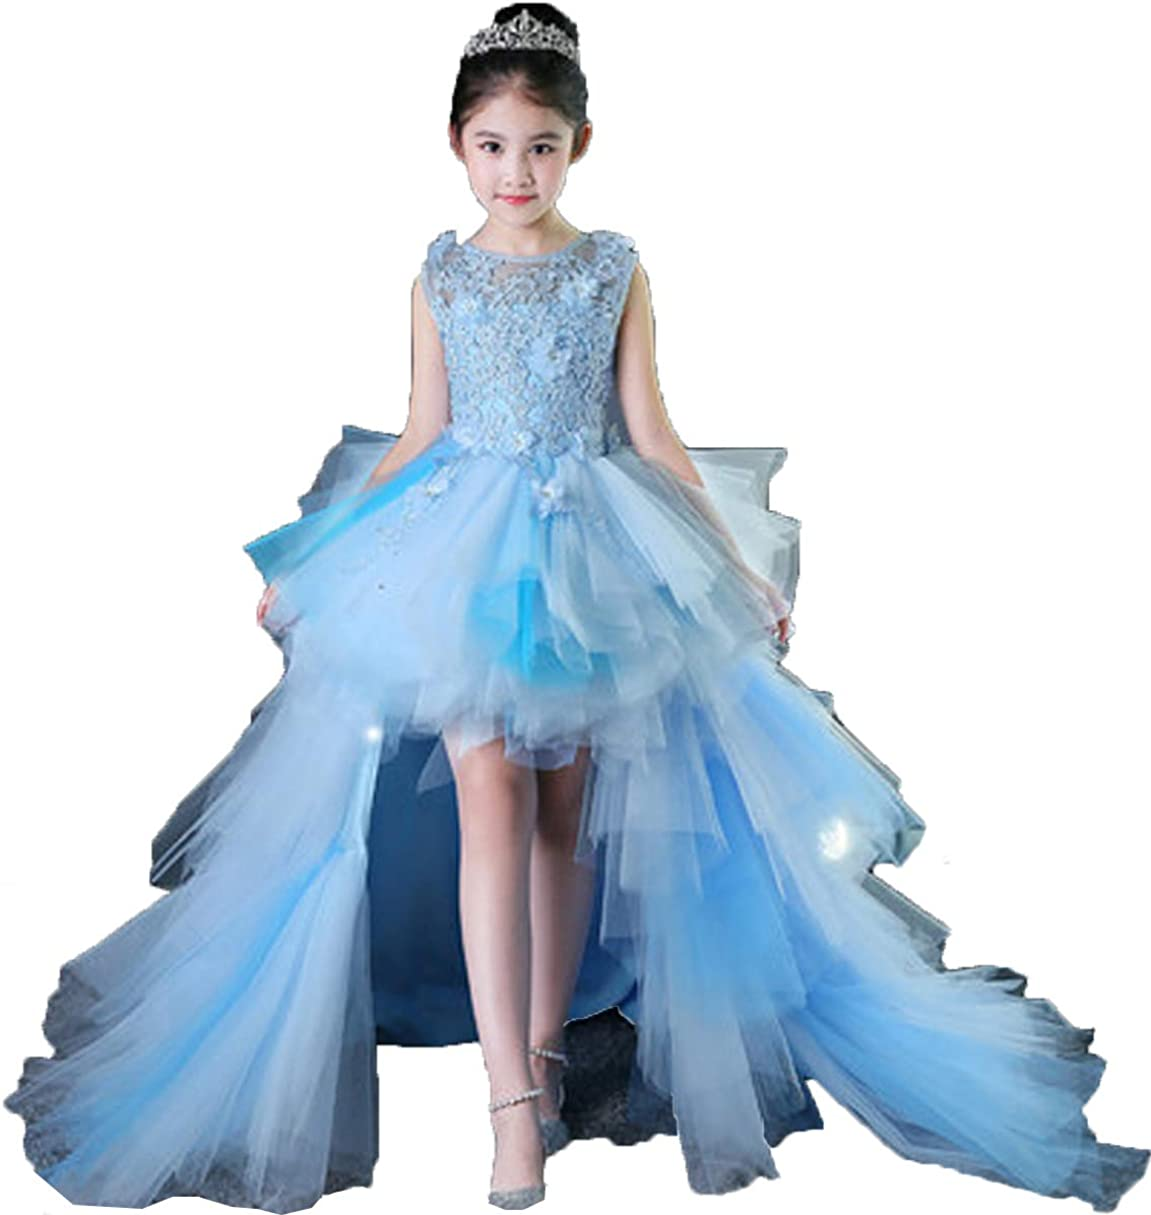 Meijia Hi-Low Girls Pageant Dresses with Detachable Train Lace Flower Girl Dress Tulle Kids First Communion Gowns ME079